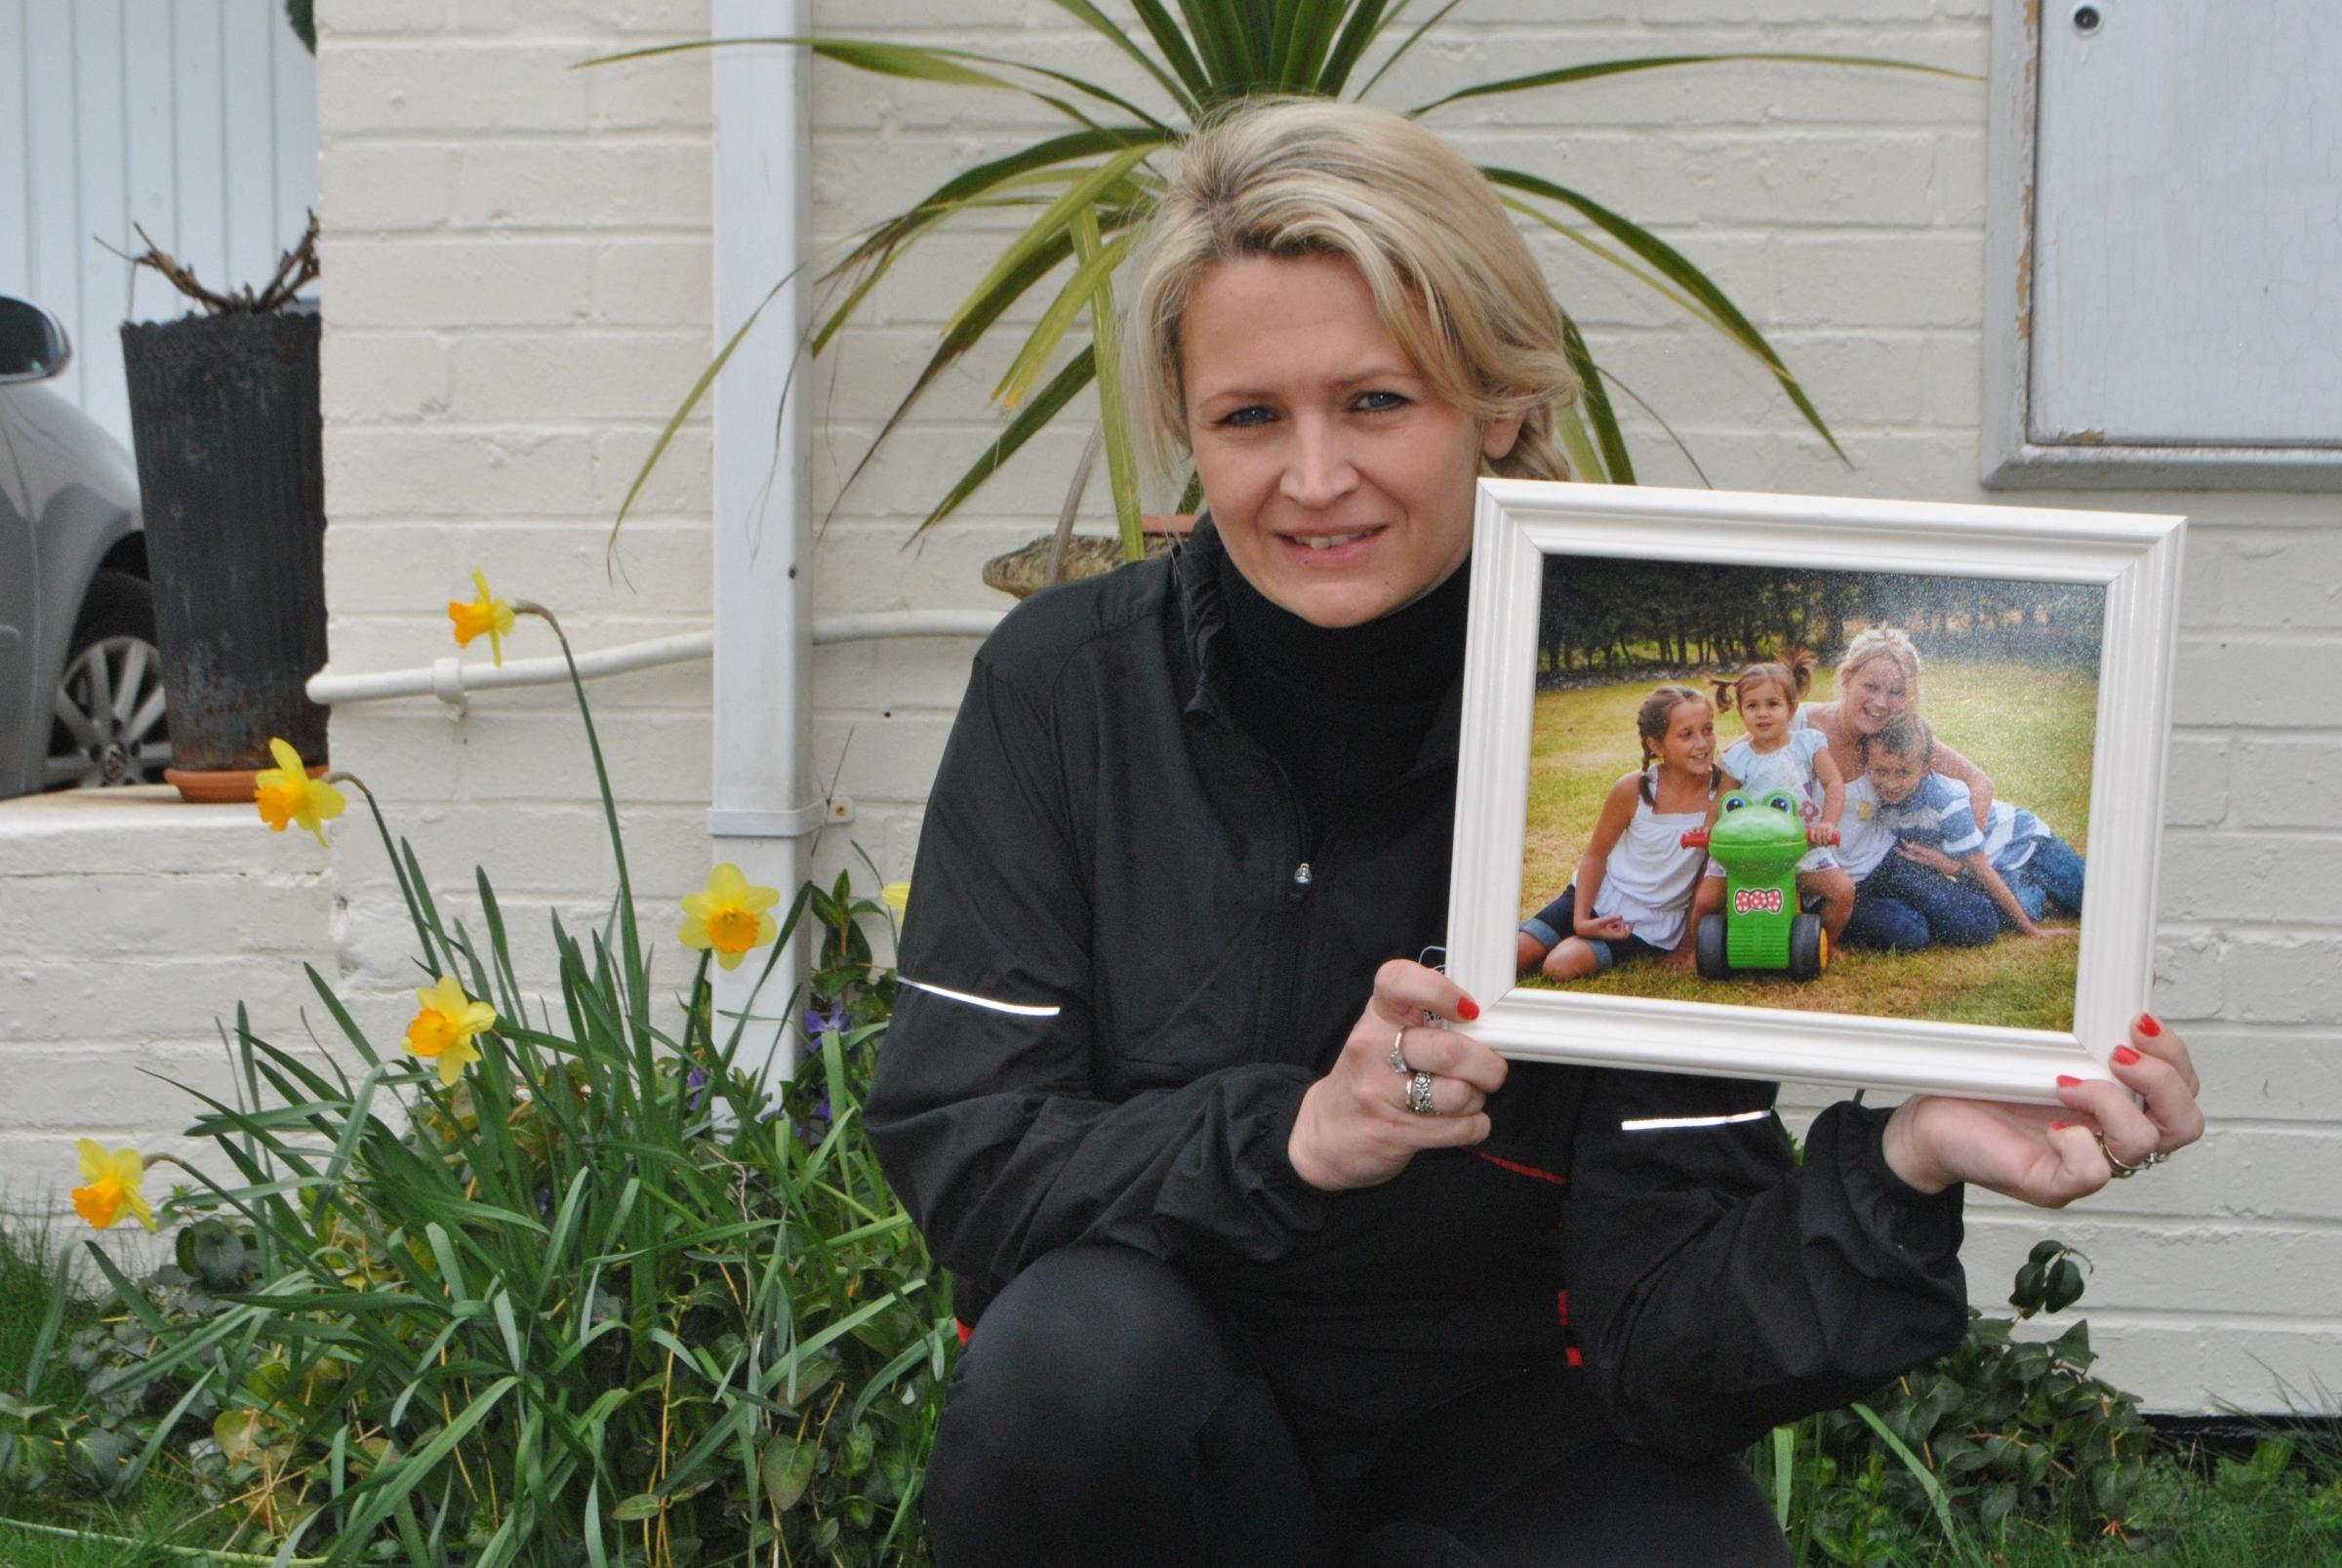 Emma Carter-Dasai with a picture of her children.